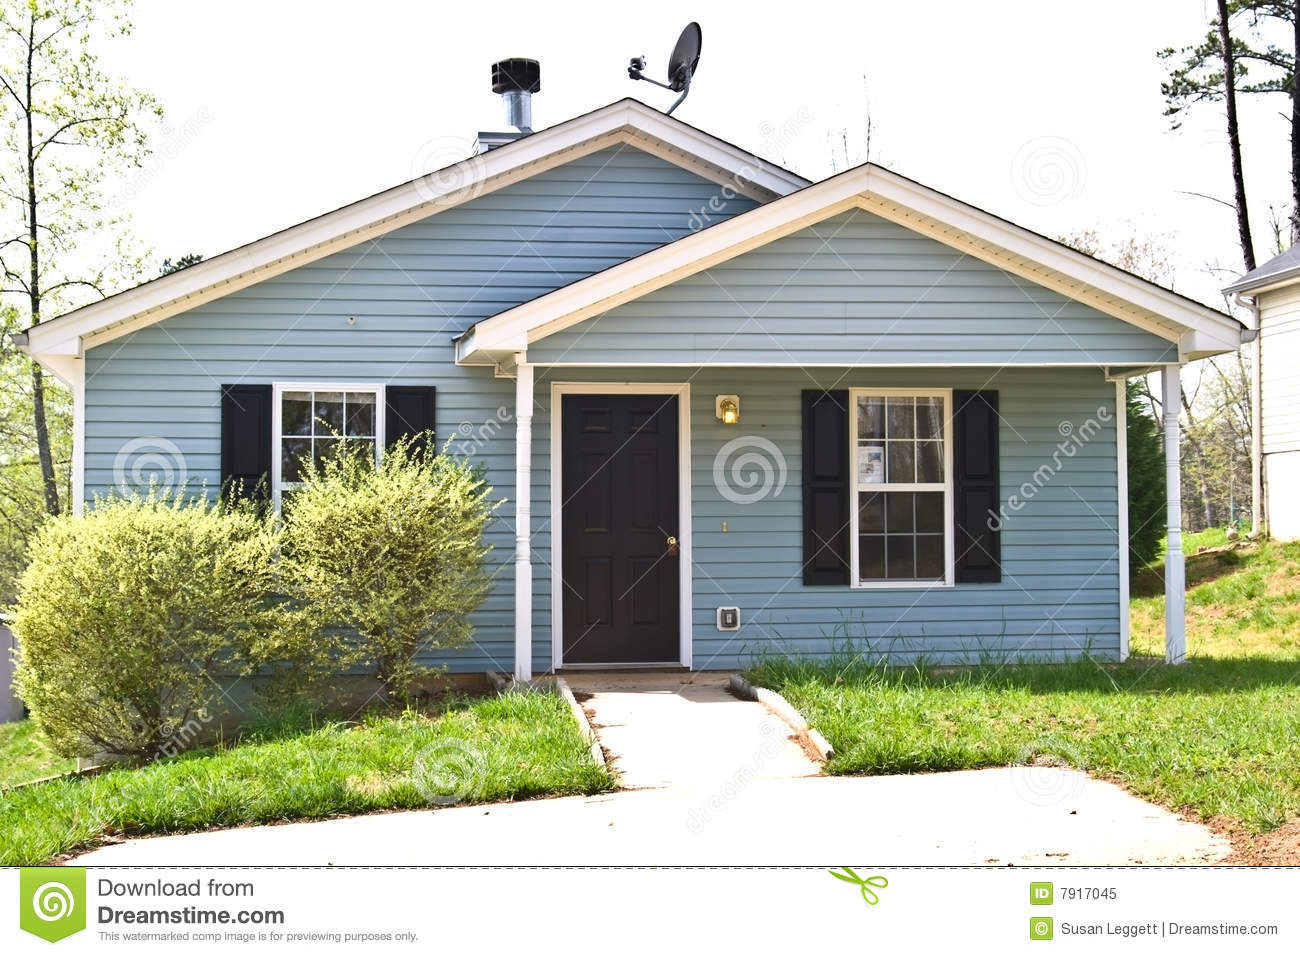 Stupendous Small House For Sale Rent Stock Image Image Of Sale Empty Download Free Architecture Designs Rallybritishbridgeorg